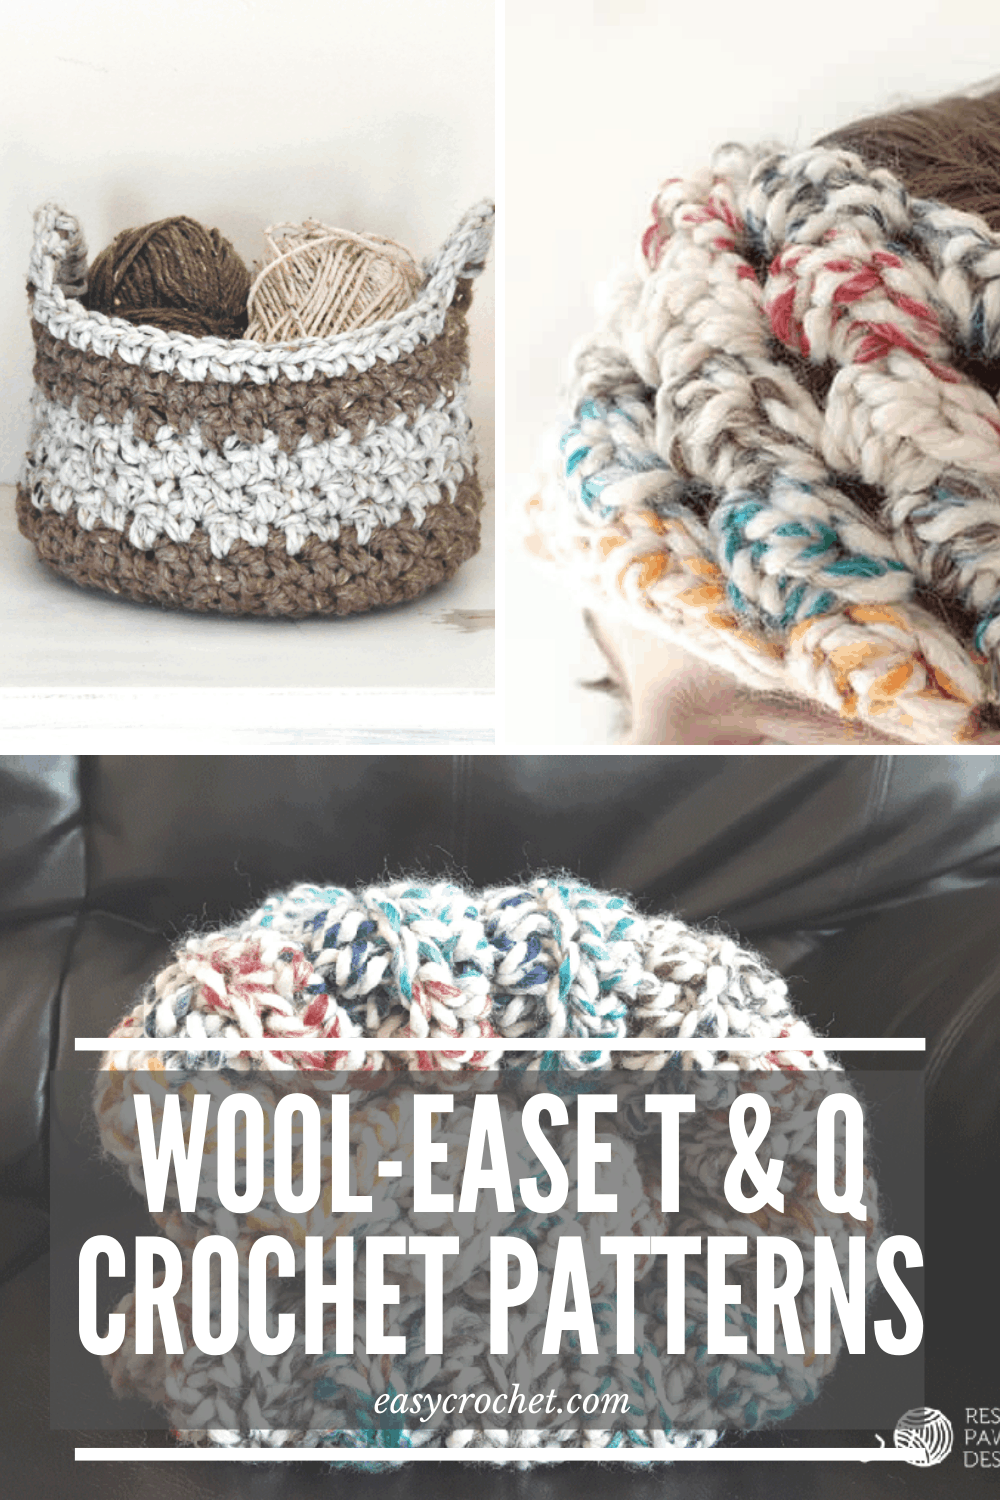 Free Crochet Patterns using Wool-Ease Thick & Quick Yarn from Lion Brand. Make a chunky basket, headband and blanket with these free chunky crochet patterns from Easy Crochet. via @easycrochetcom